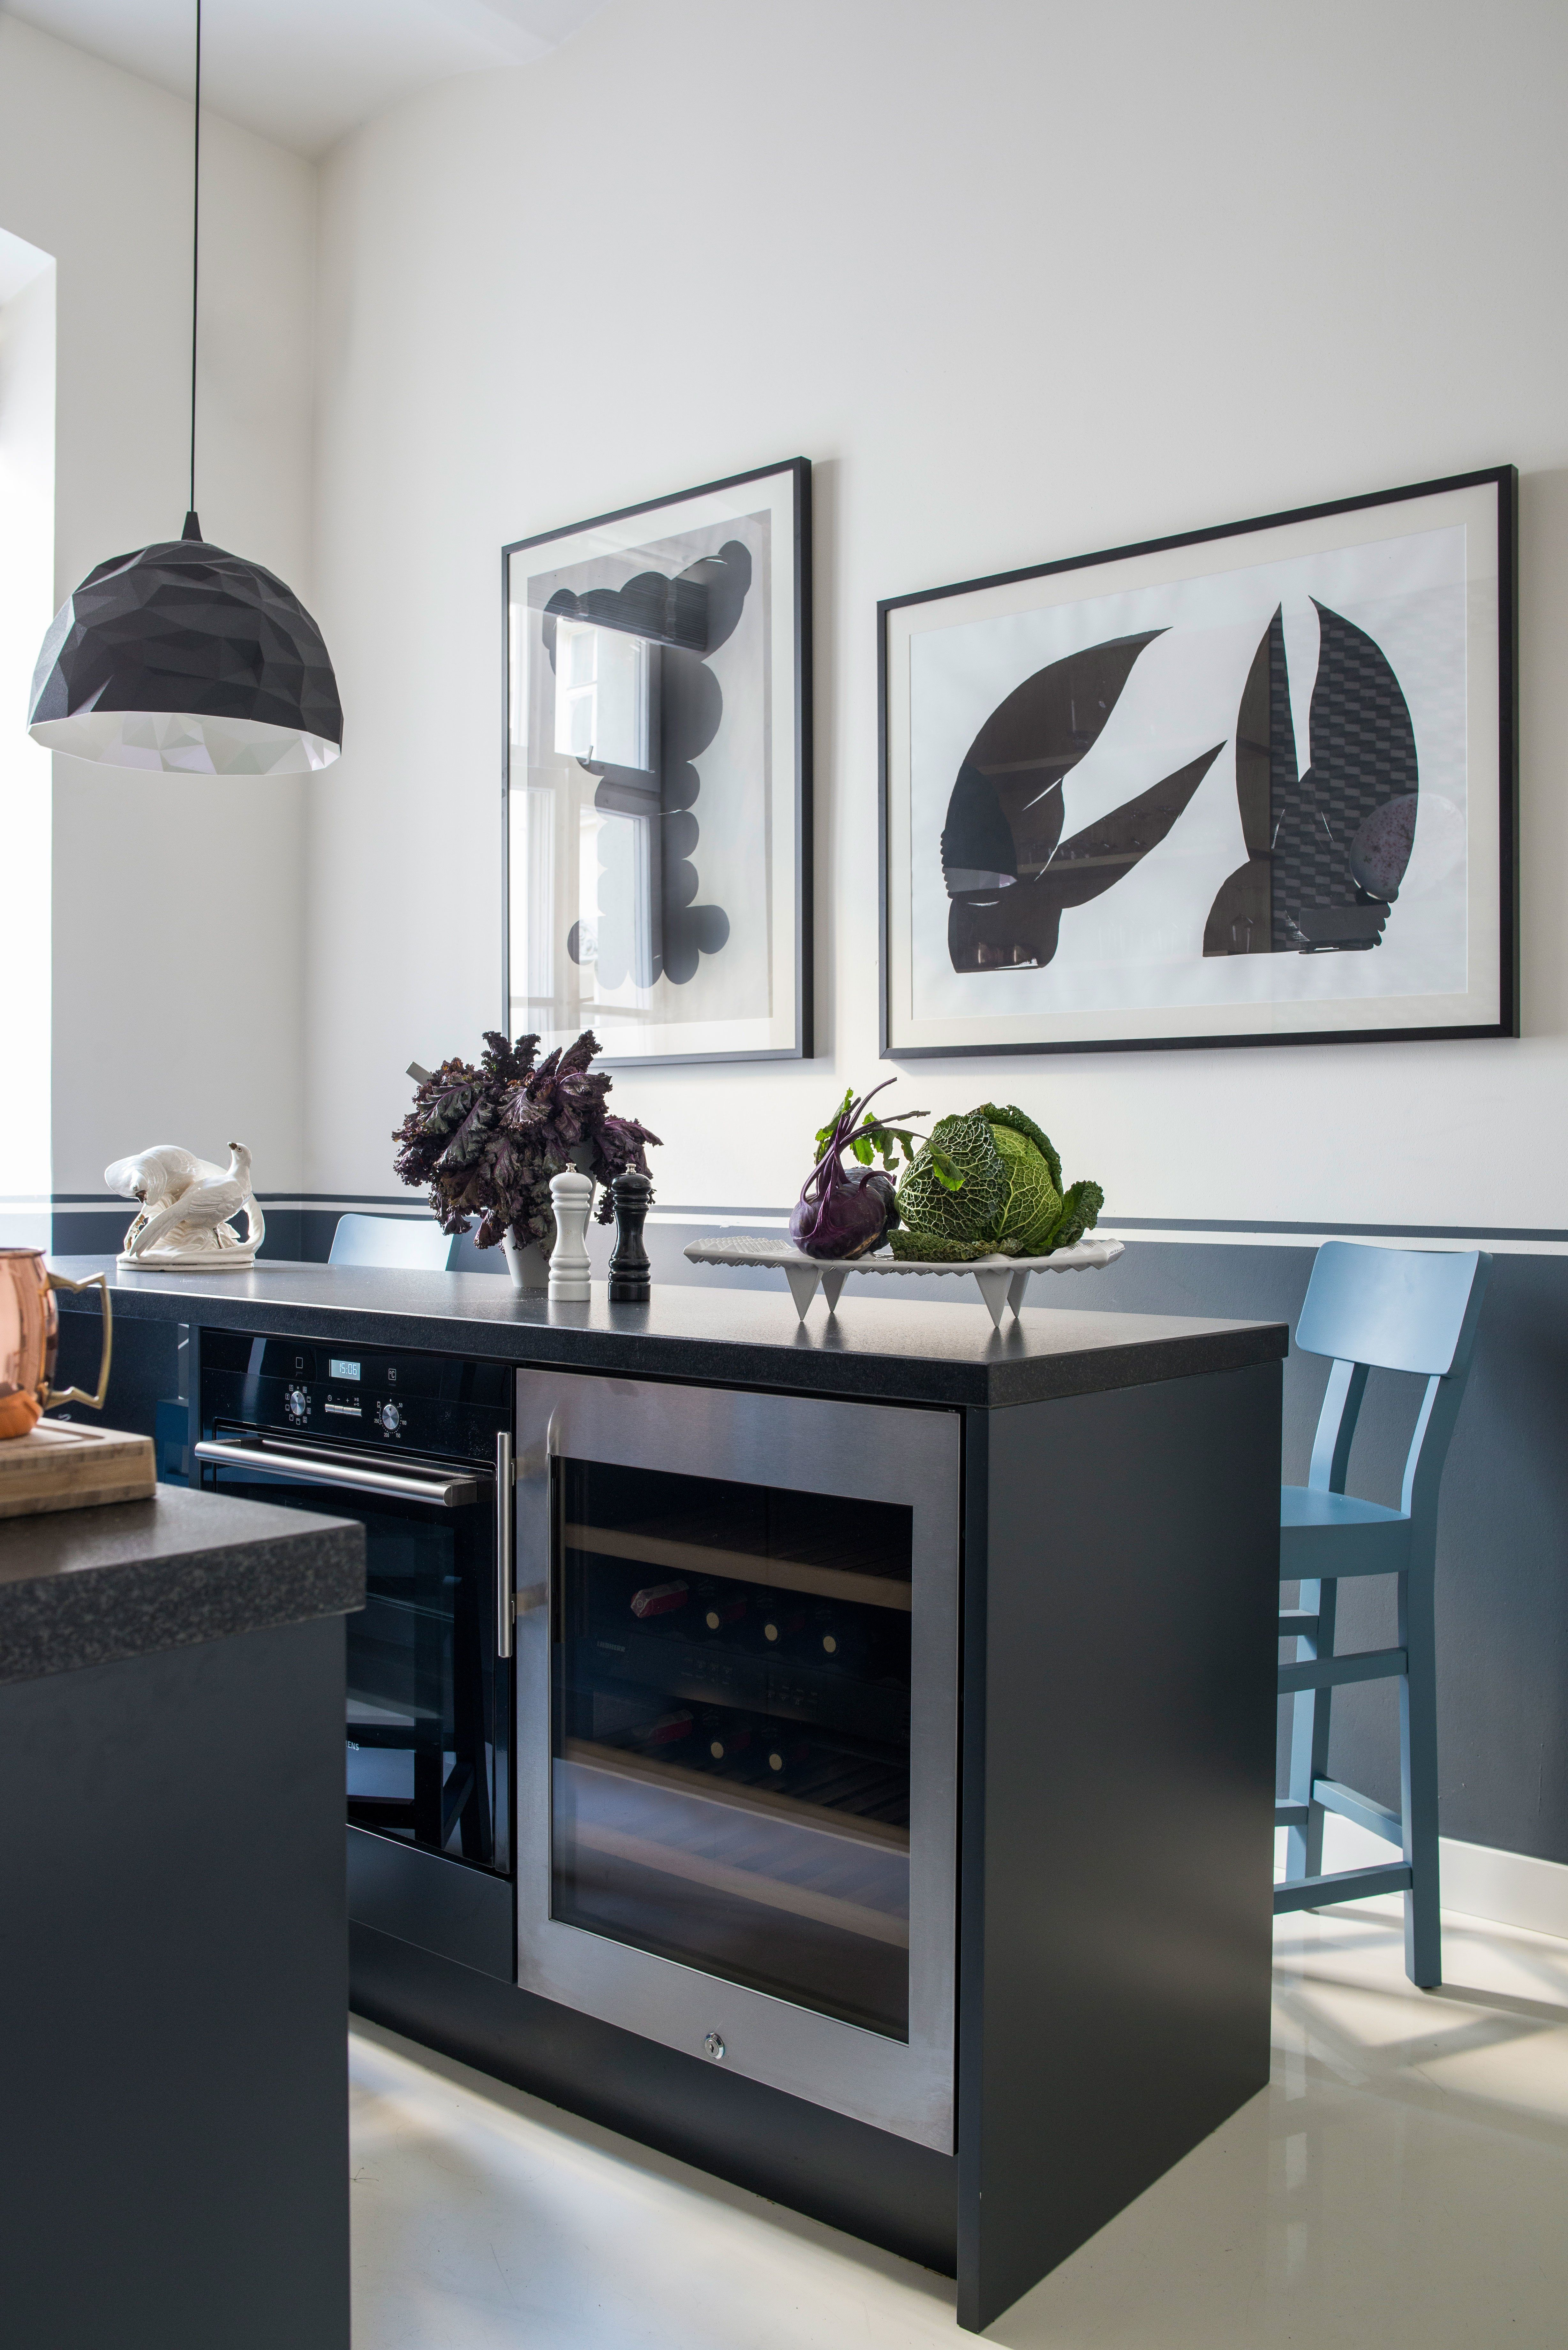 A Paint Trick That Adds Architectural Character Without The Cost